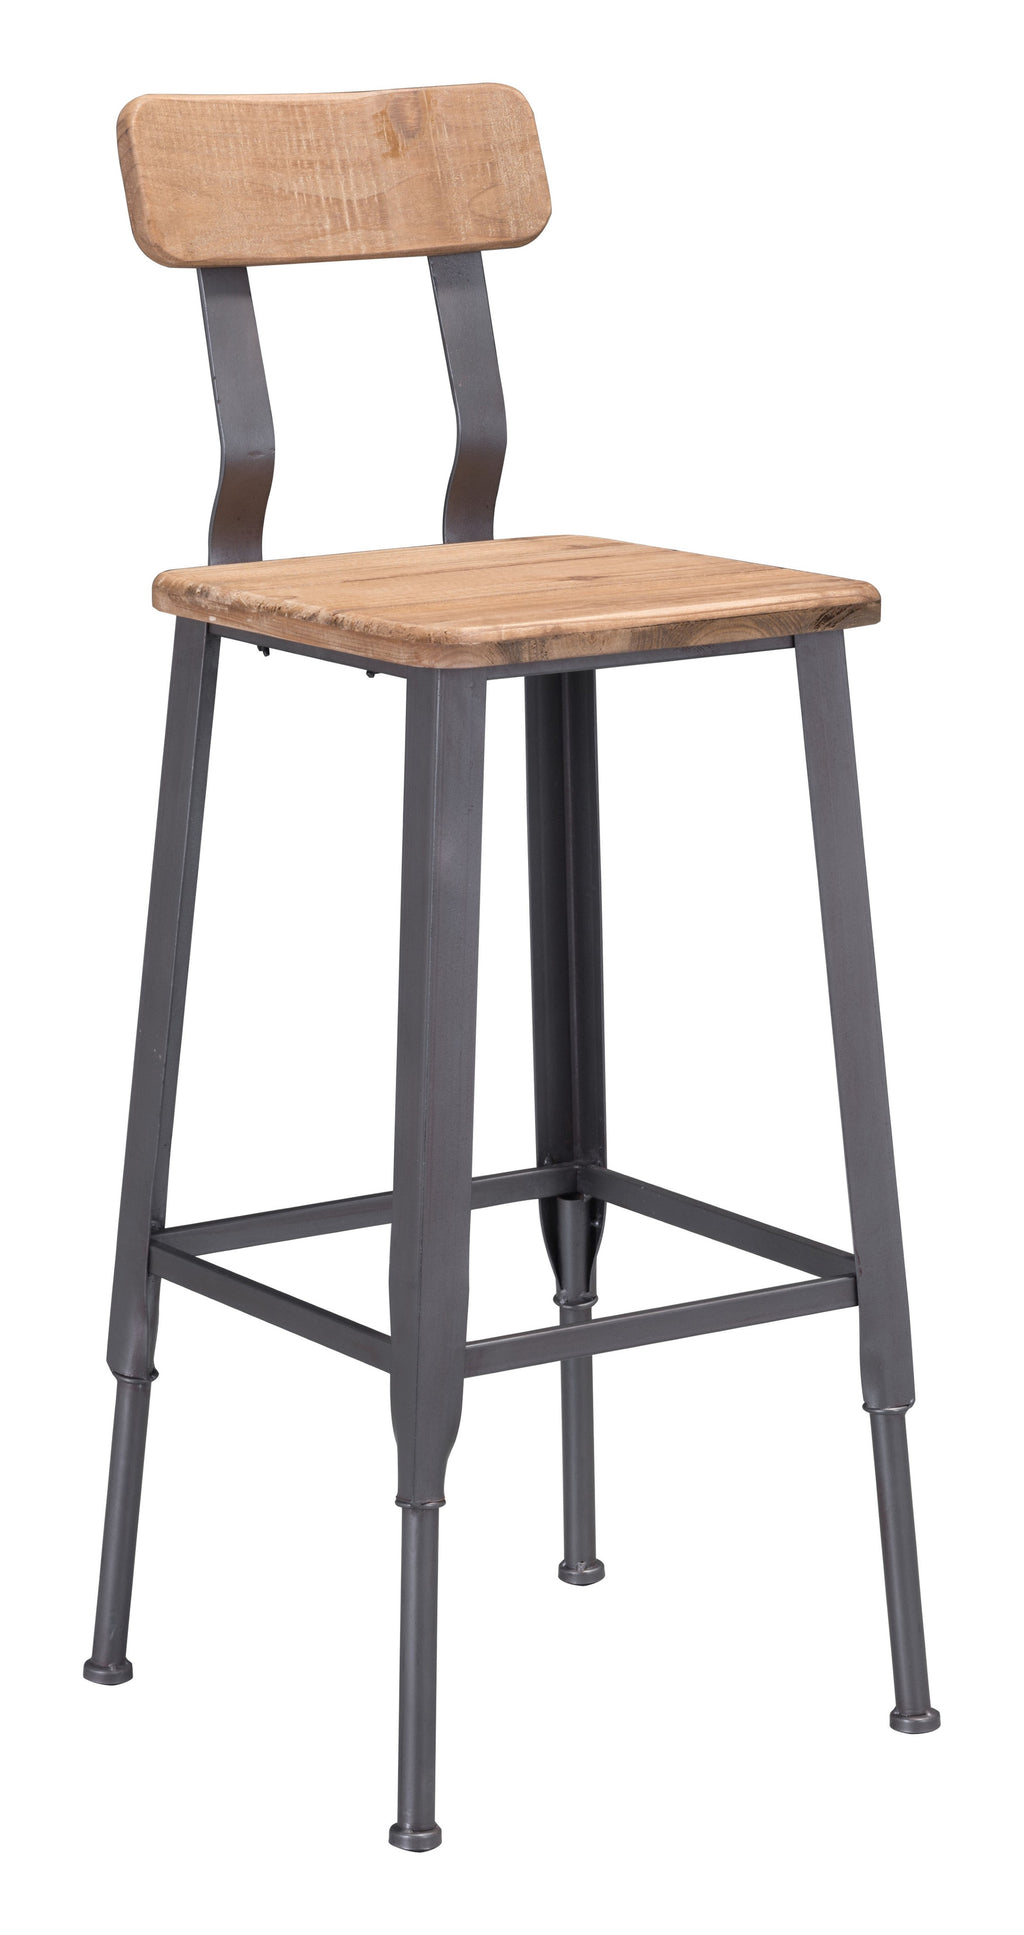 Clay Bar Chair (Natural Pine & Industrial Gray)